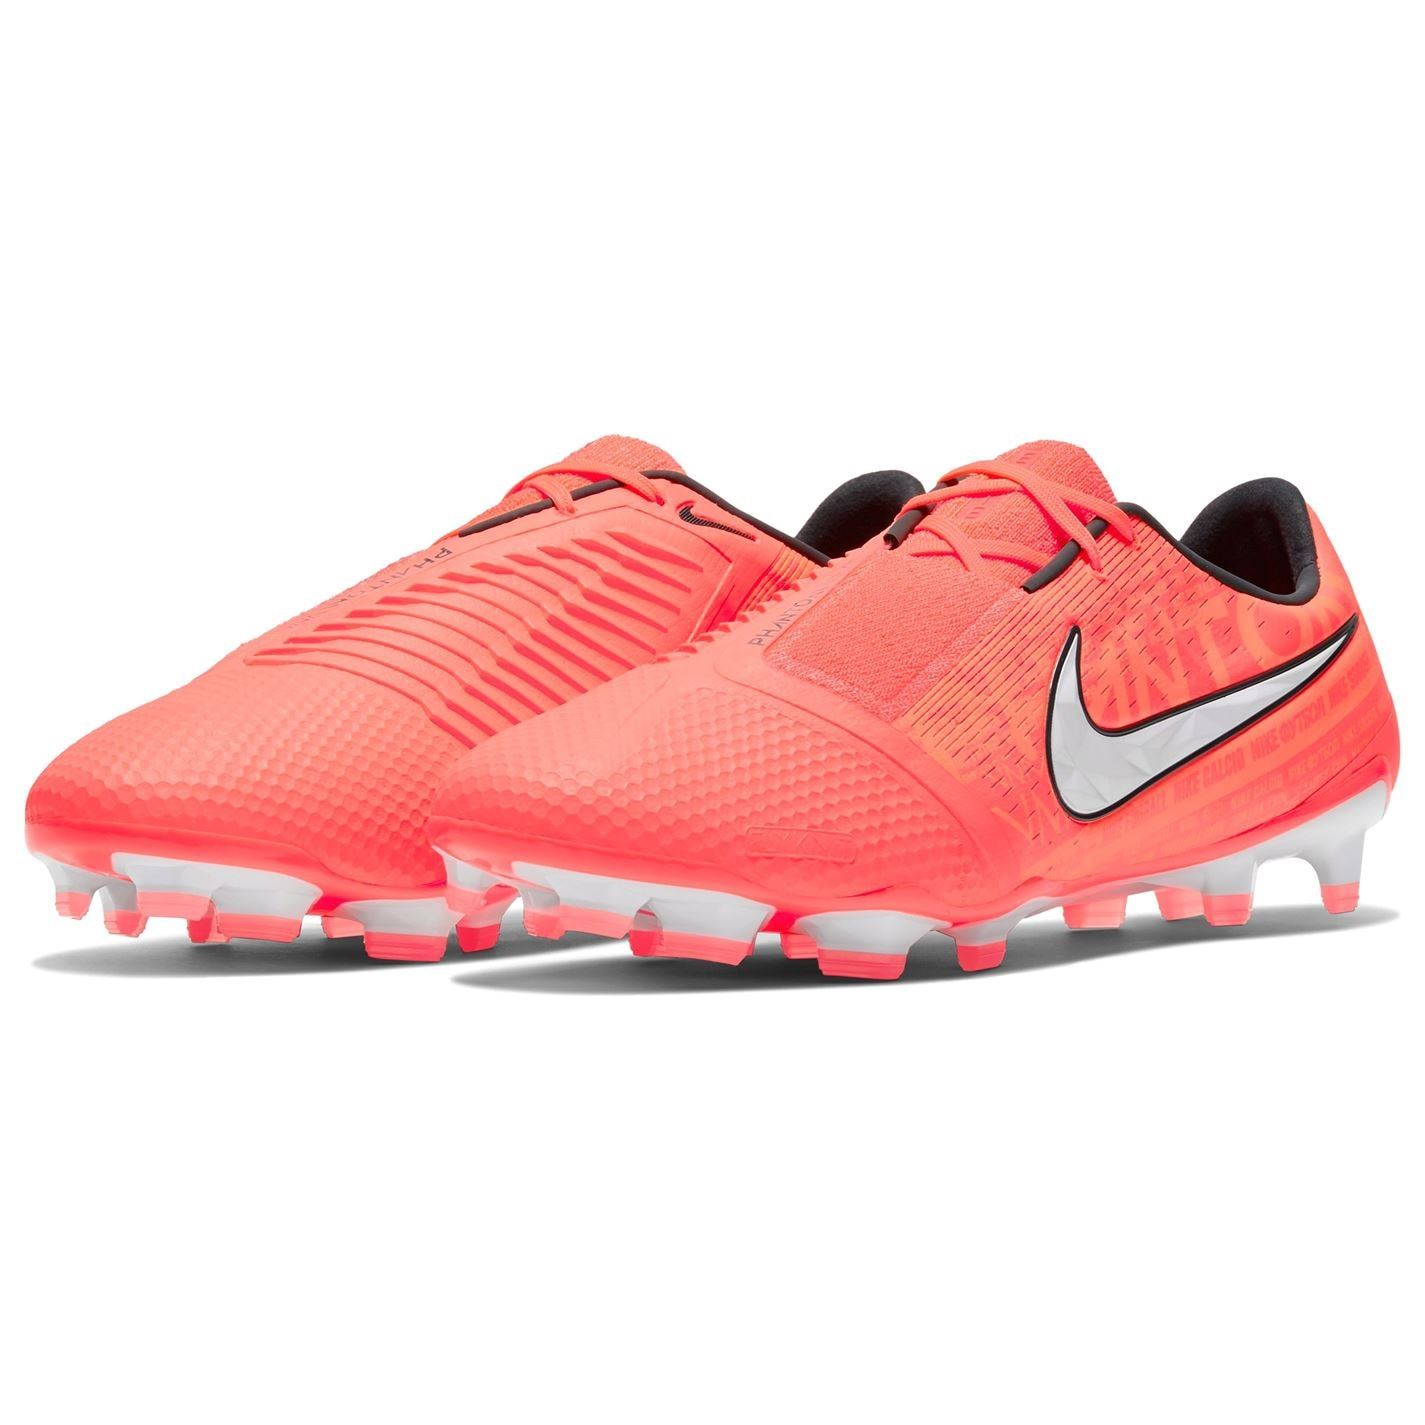 Nike-Phantom-Venom-Elite-Homme-FG-Firm-Ground-Chaussures-De-Football-Chaussures-de-foot-crampons miniature 8